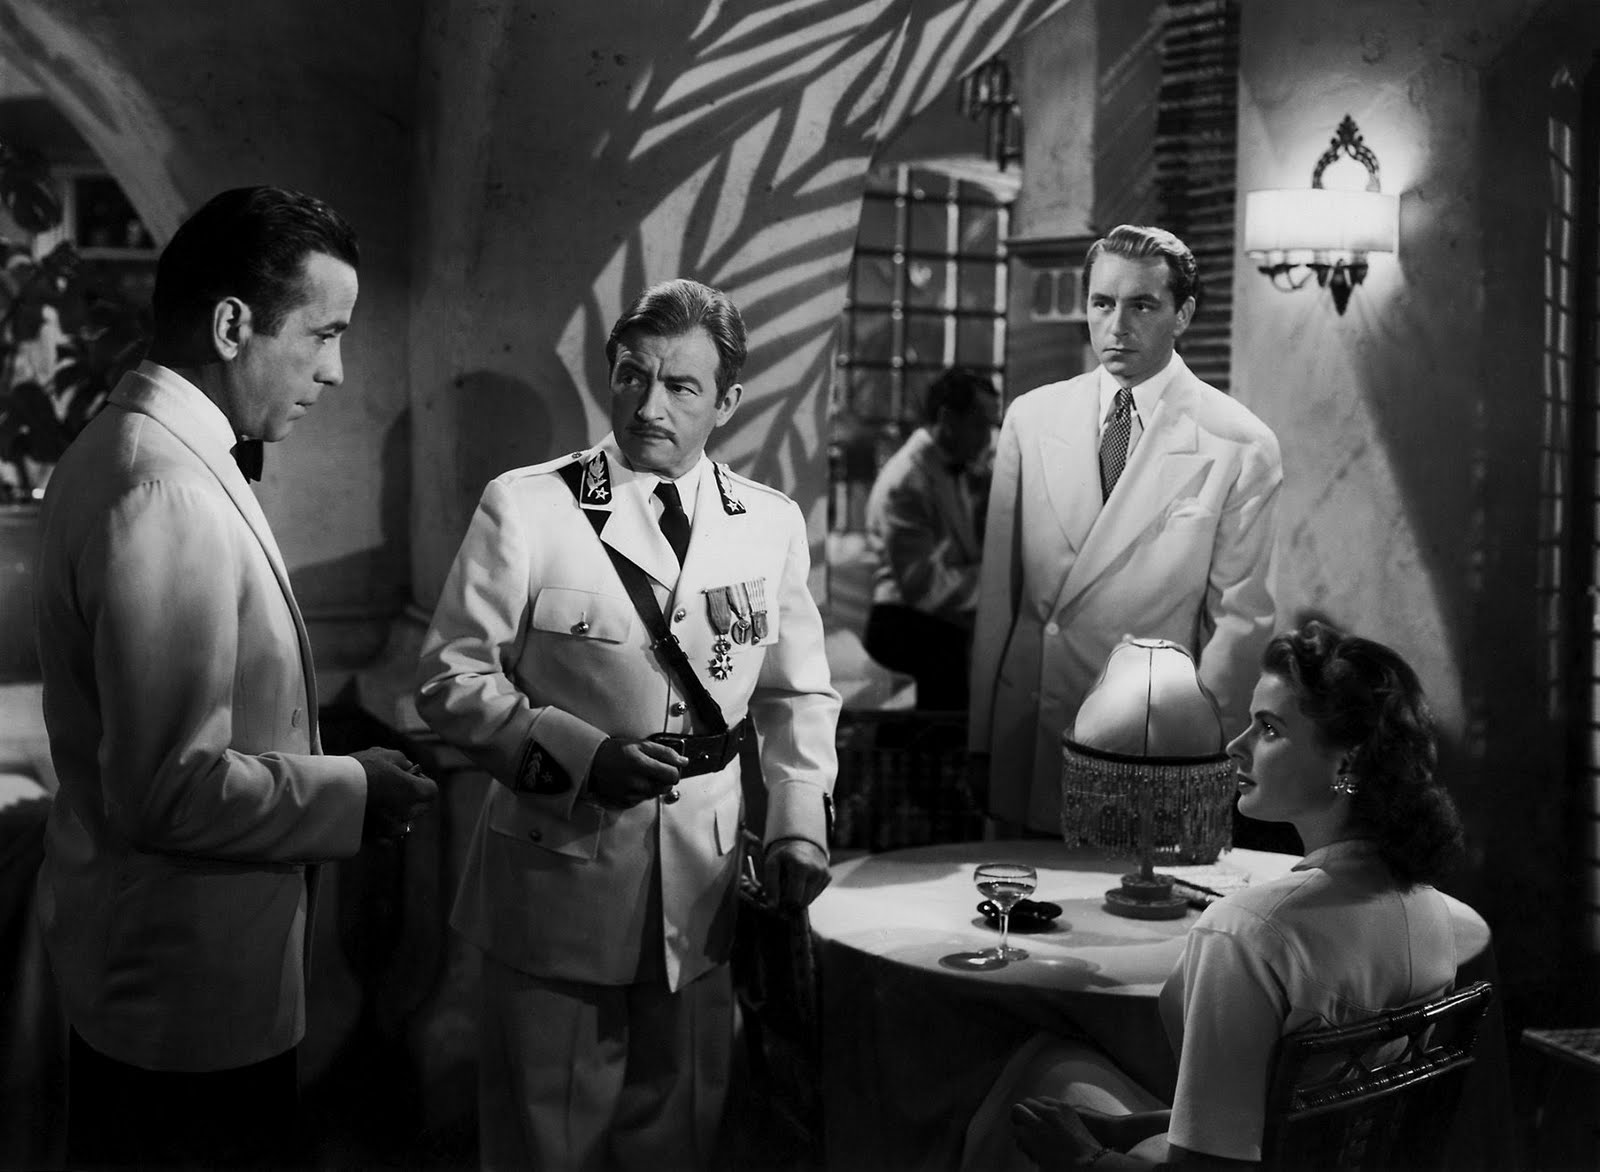 a review of casablanca a film by michael curtiz Casablanca director michael curtiz is finally getting the recognition he deserves film critic kenneth turan previews this series in the los angeles times.